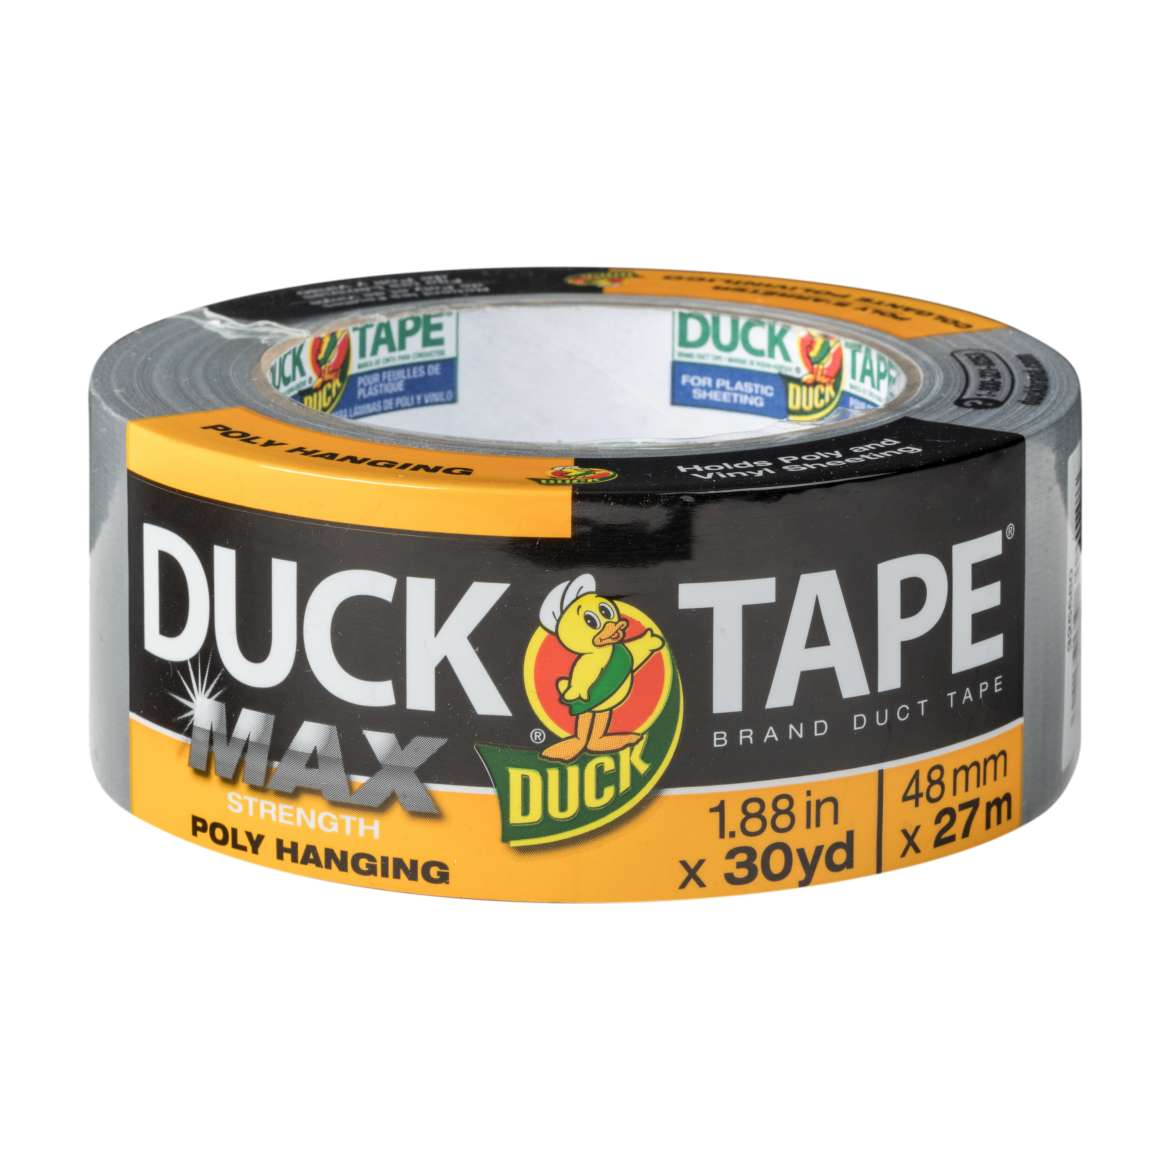 Duck® Brand Duct Tape for Poly Hanging - Silver, 1.88 in. x 30  yd. Image